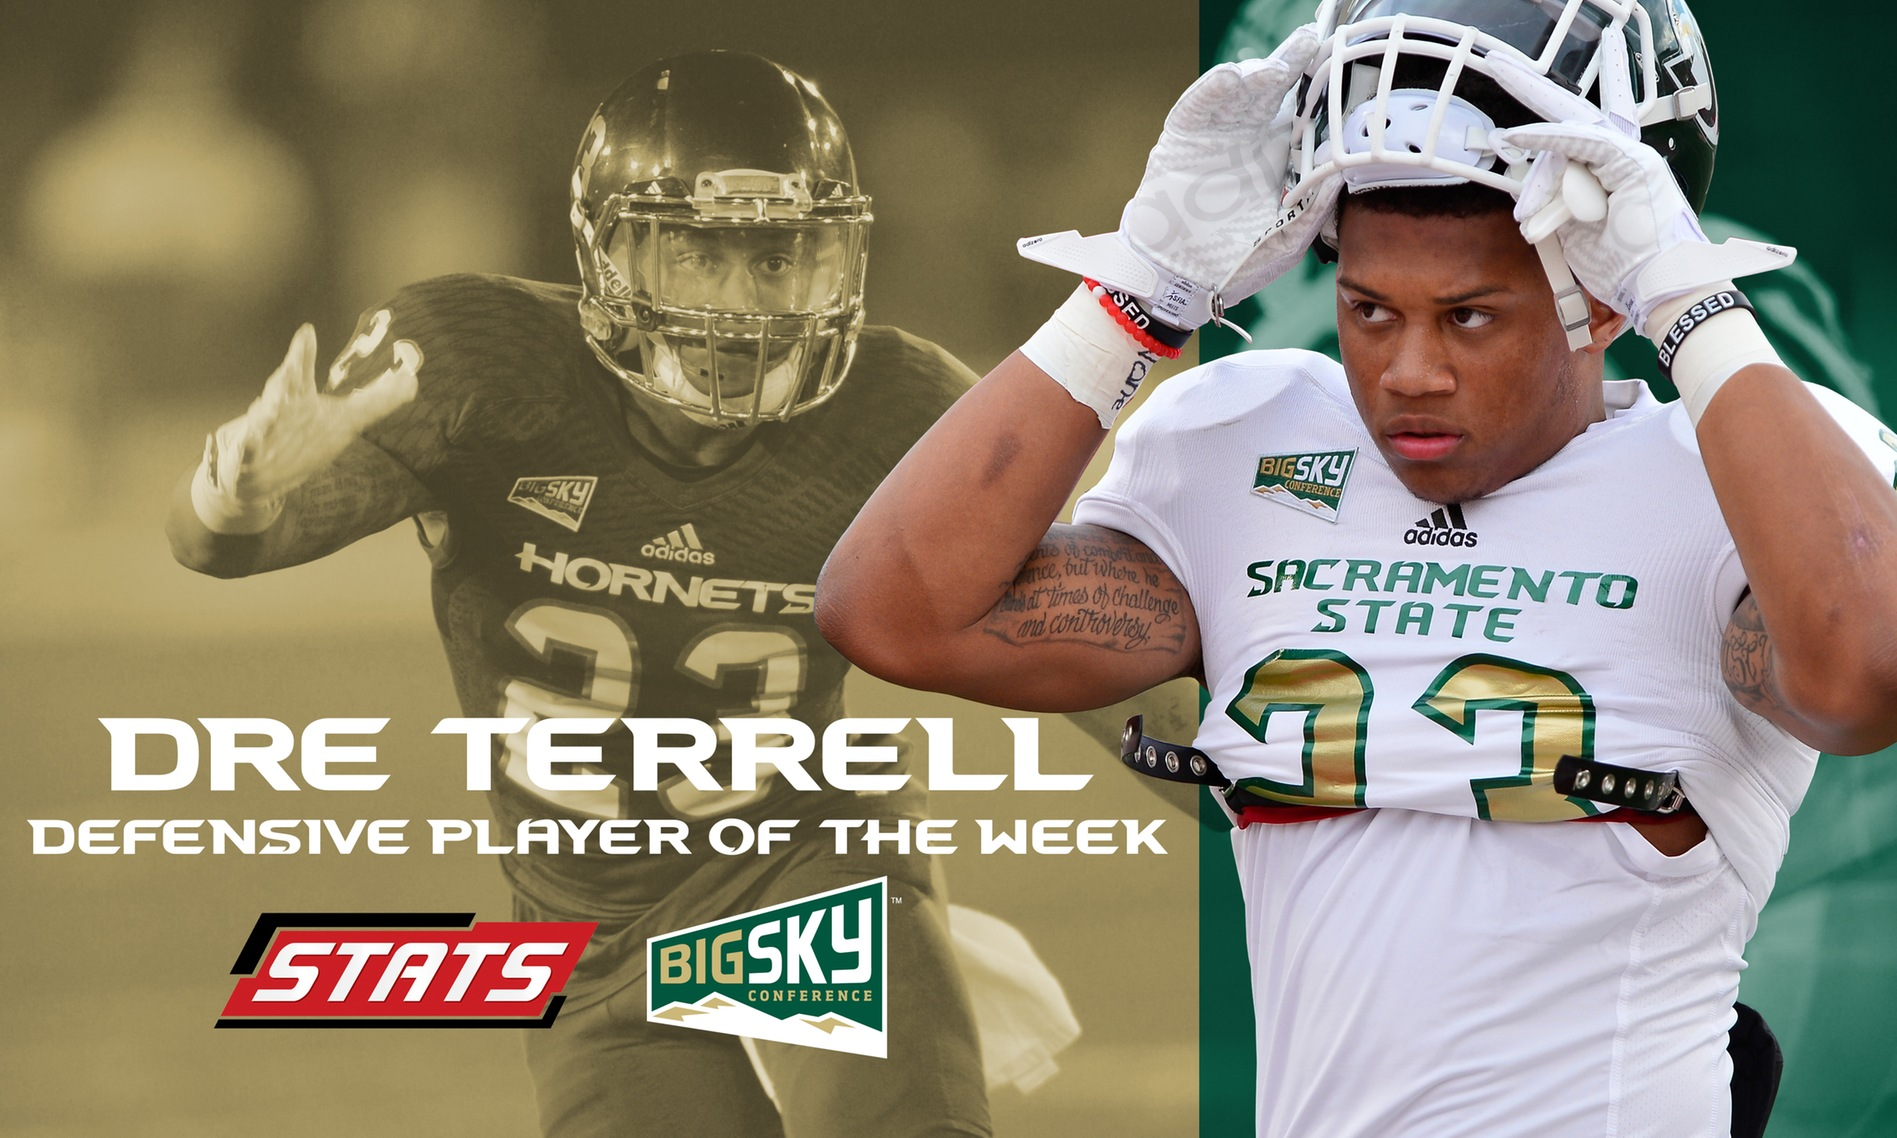 TERRELL NAMED FCS NATIONAL AND BIG SKY DEFENSIVE PLAYER OF THE WEEK